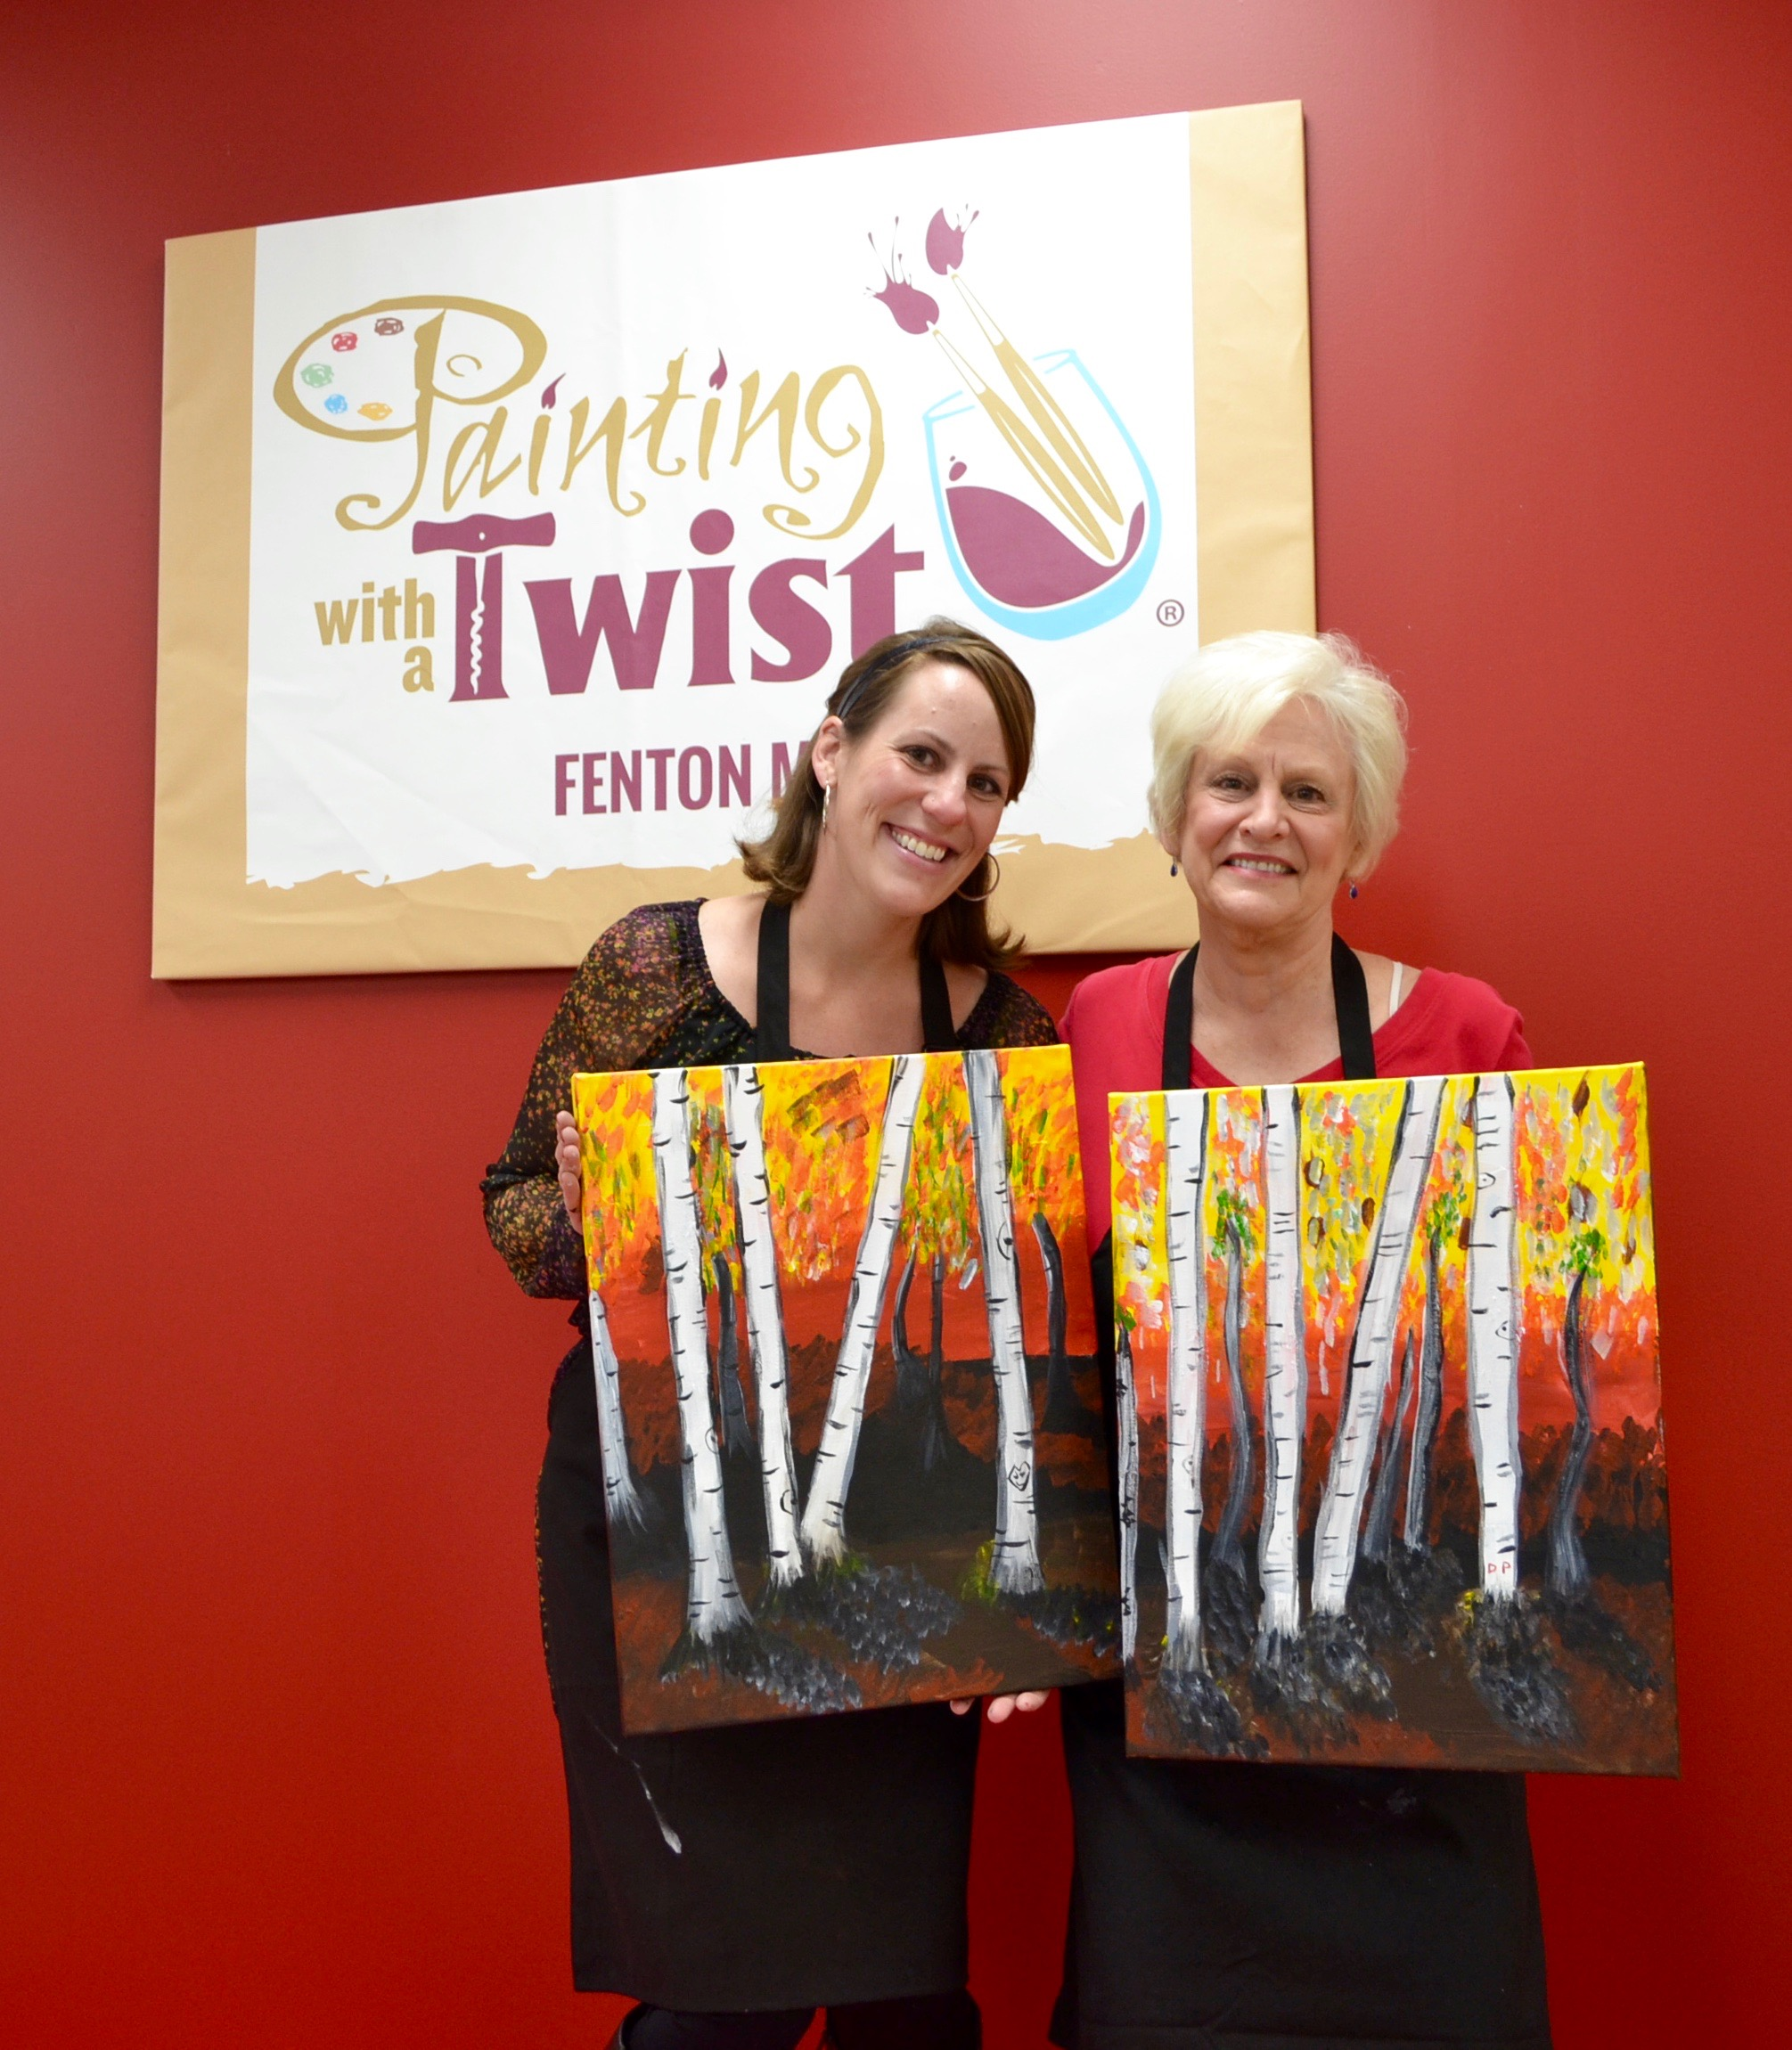 painting with a twist in fenton now open giveaway ends 11 30 mrs weber 39 s neighborhood. Black Bedroom Furniture Sets. Home Design Ideas